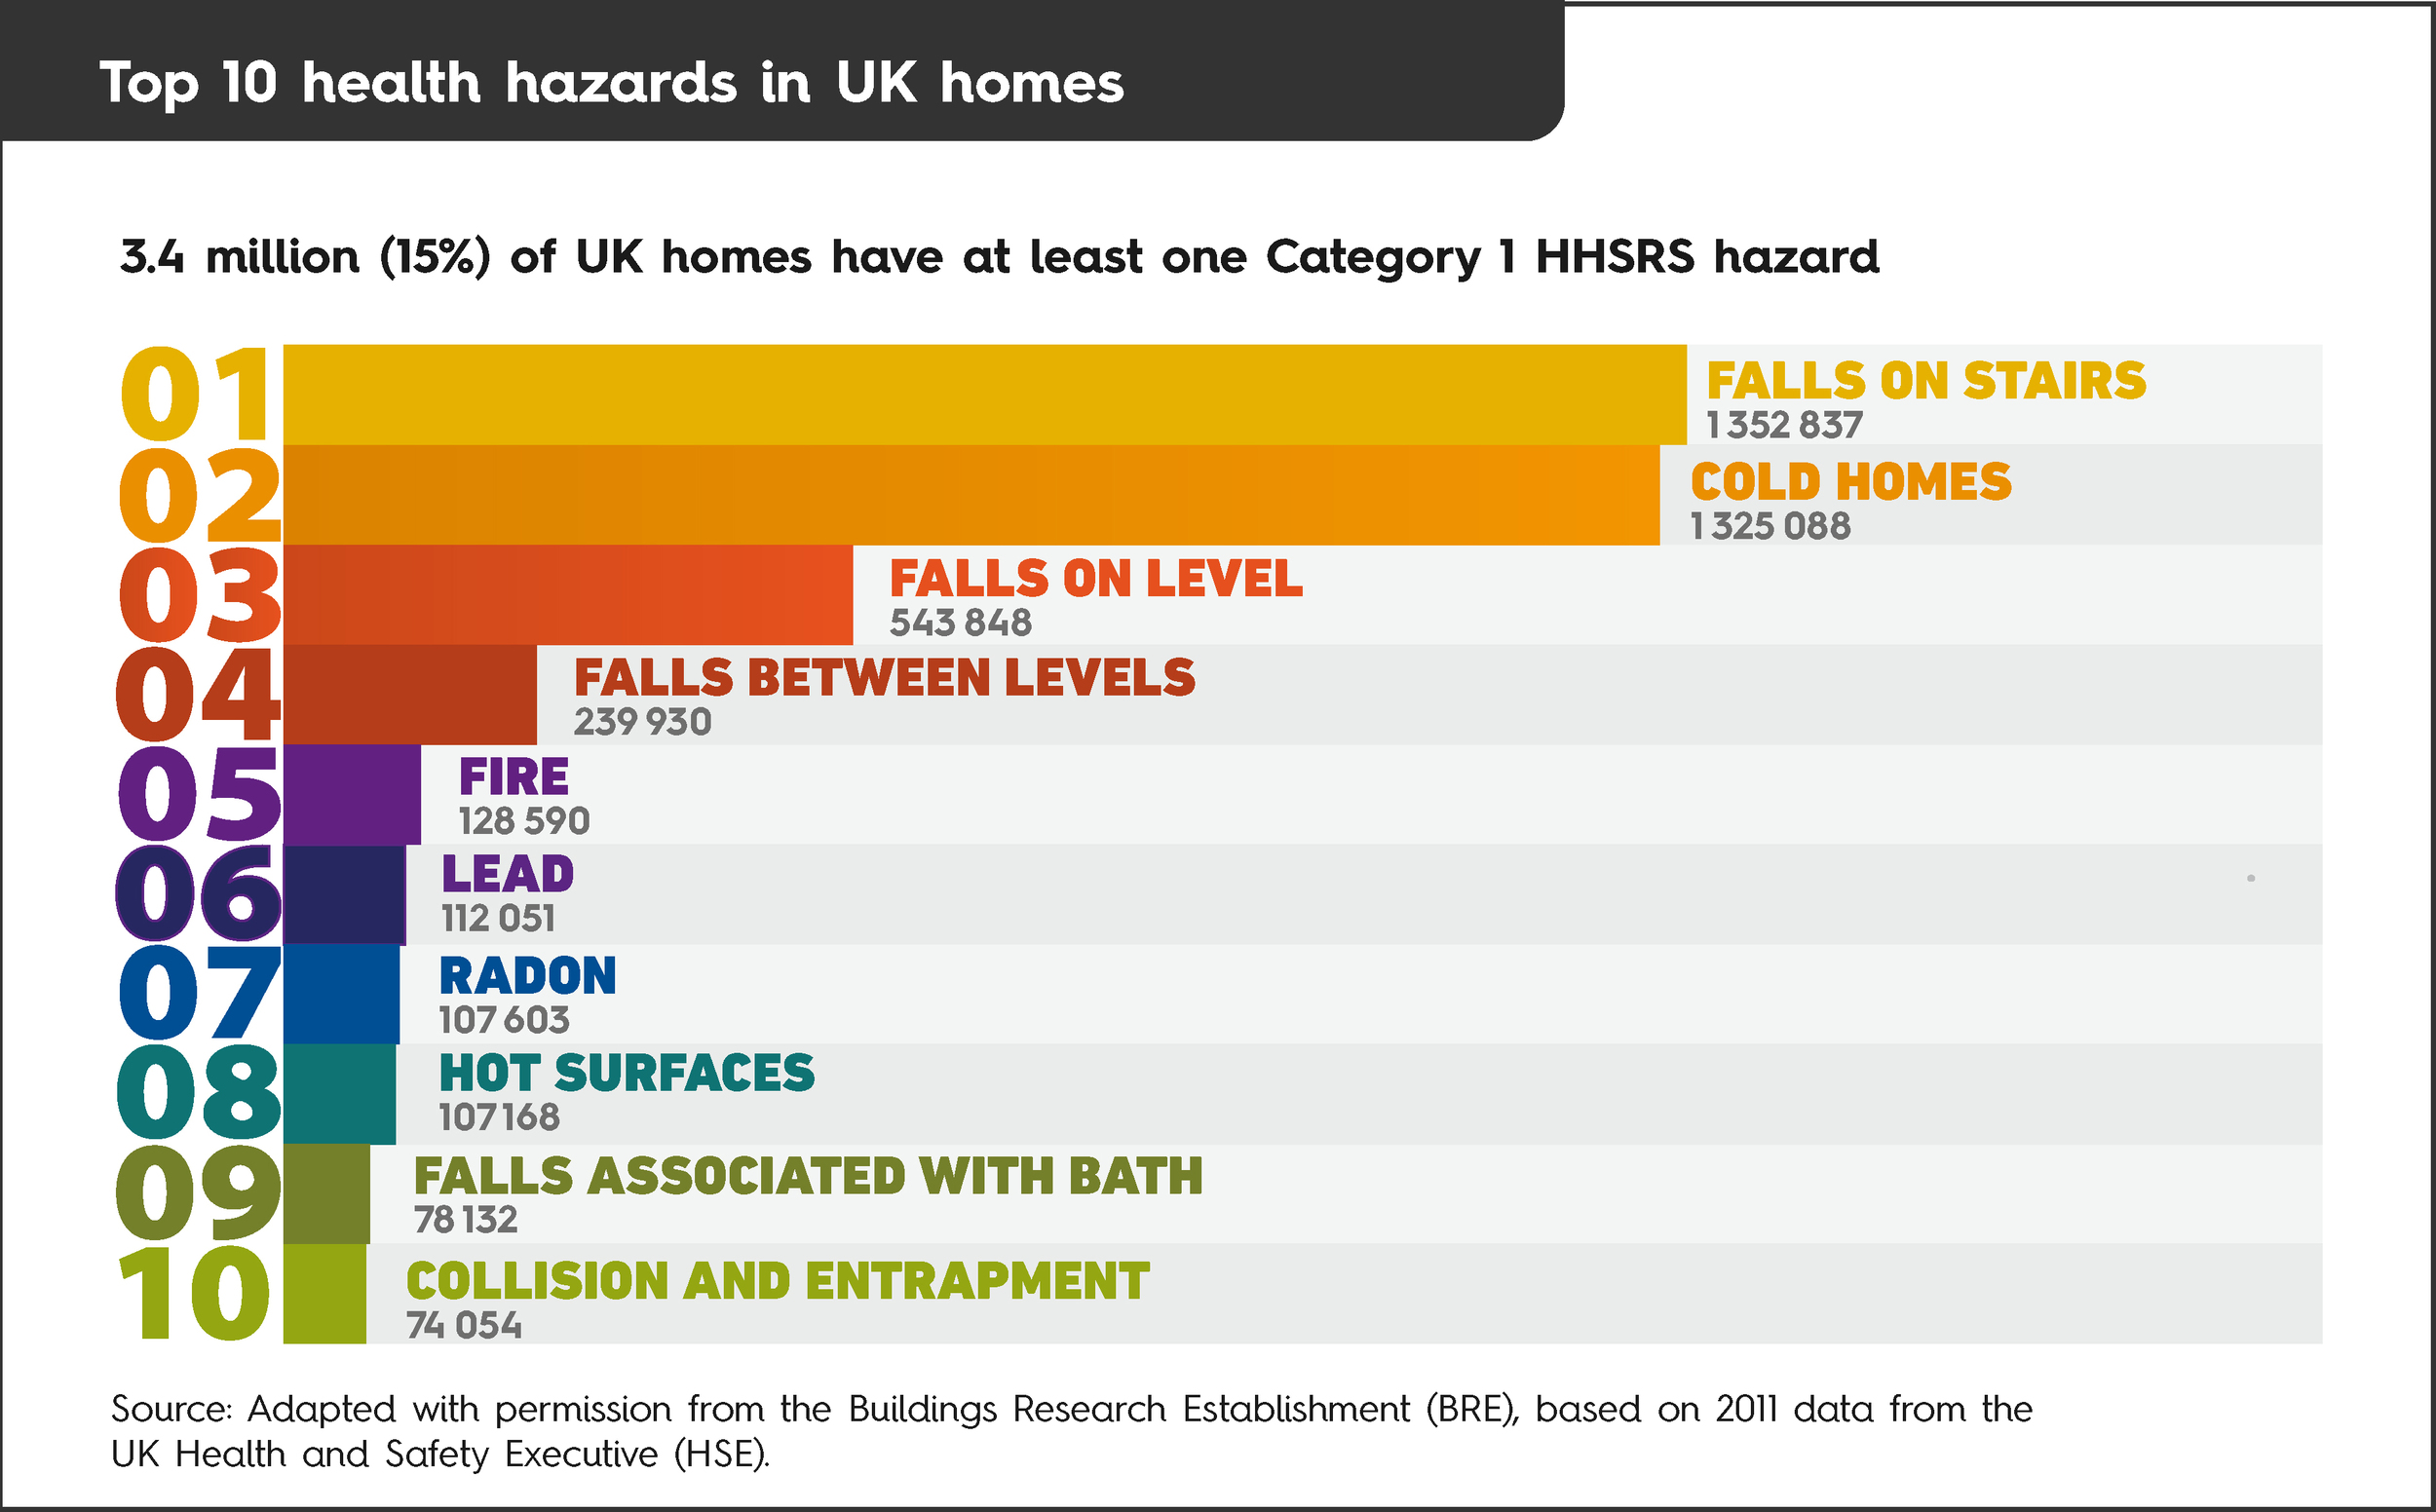 Top 10 health hazards in the United Kingdom (UK).